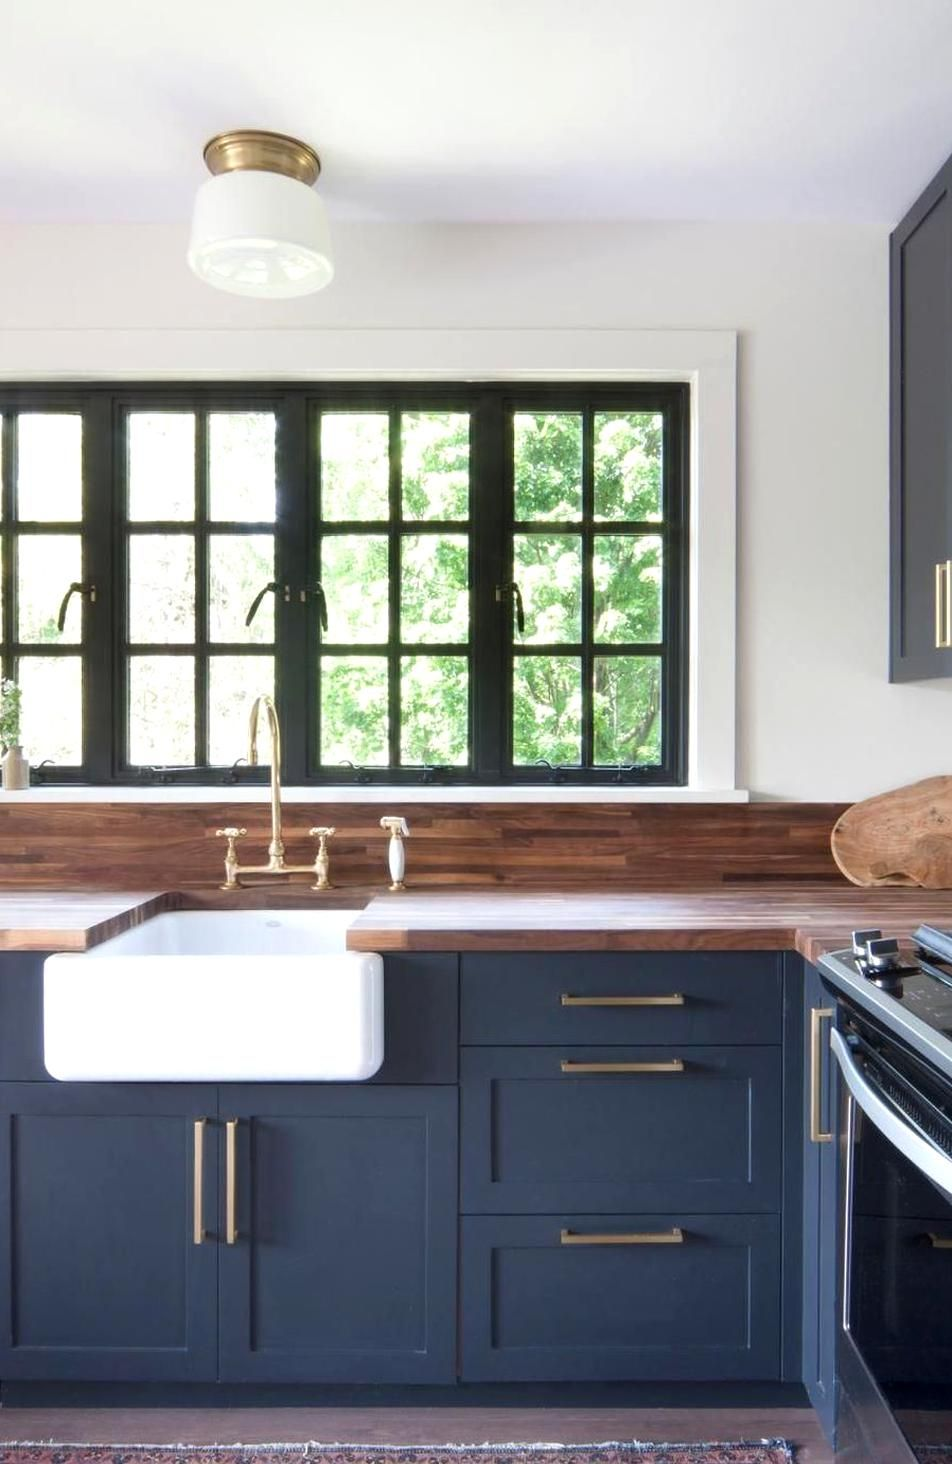 20 Classy Blue Kitchen Cabs Design Ideas For Kitchen Looks More Incredible Kitchens Are In 2020 Kitchen Cabinet Styles New Kitchen Cabinets Painting Kitchen Cabinets